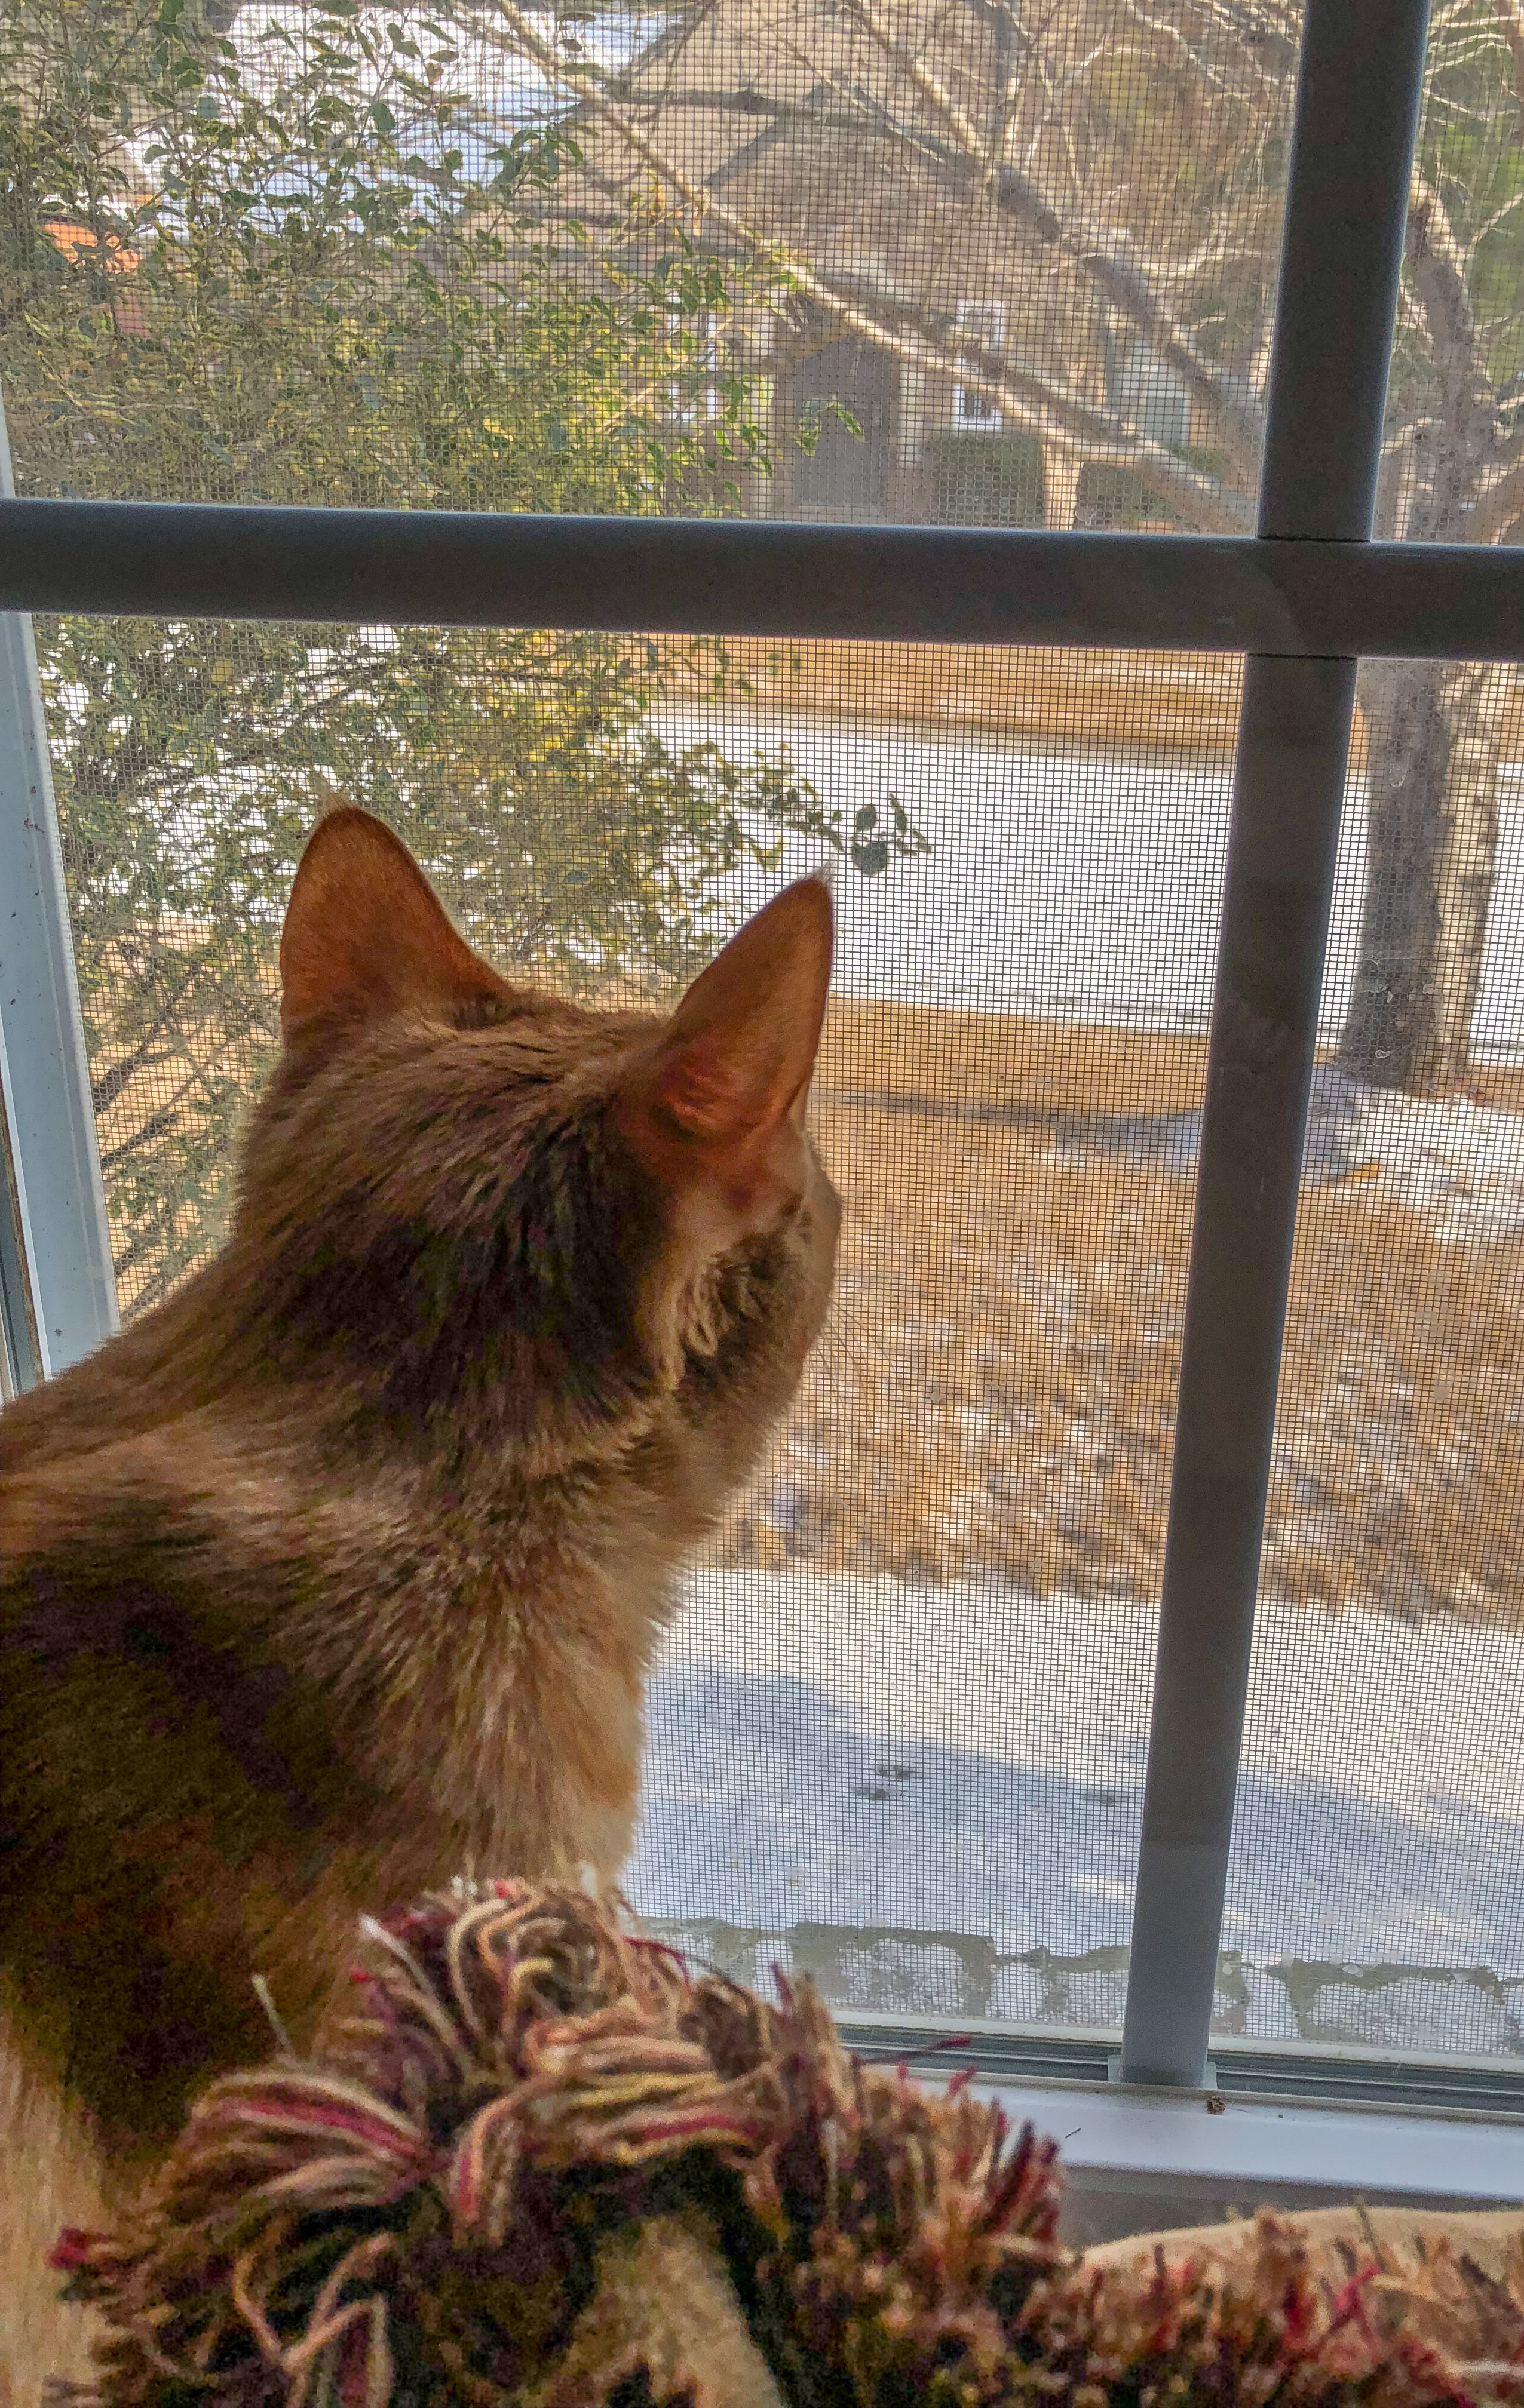 Marmalade watching the snow